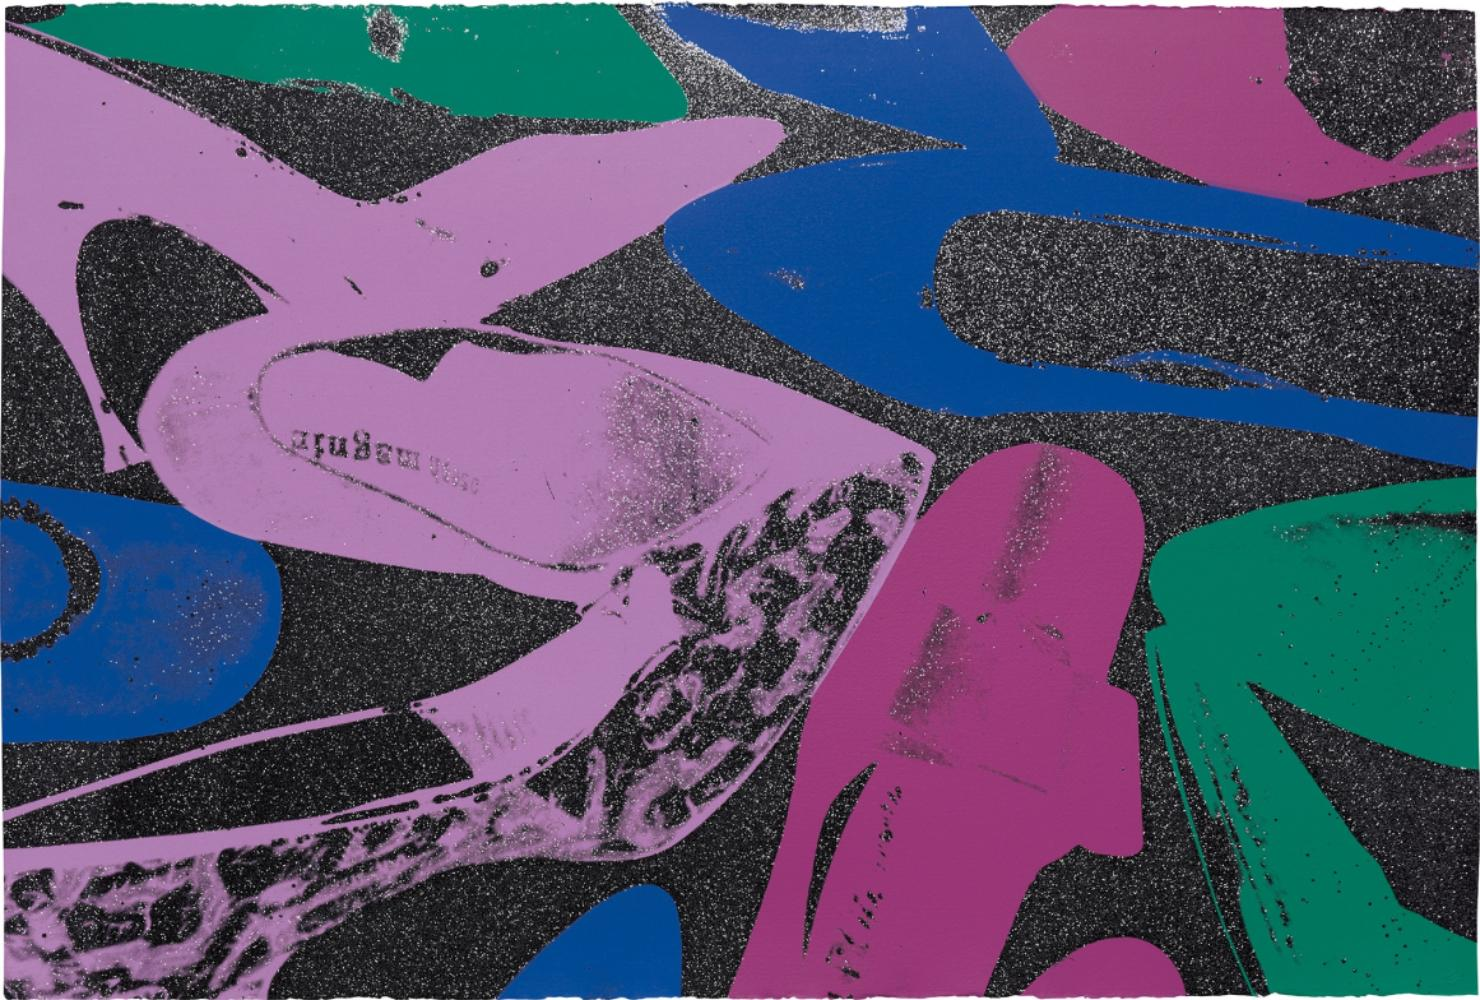 Andy Warhol, Shoes with Diamond Dust, 1980